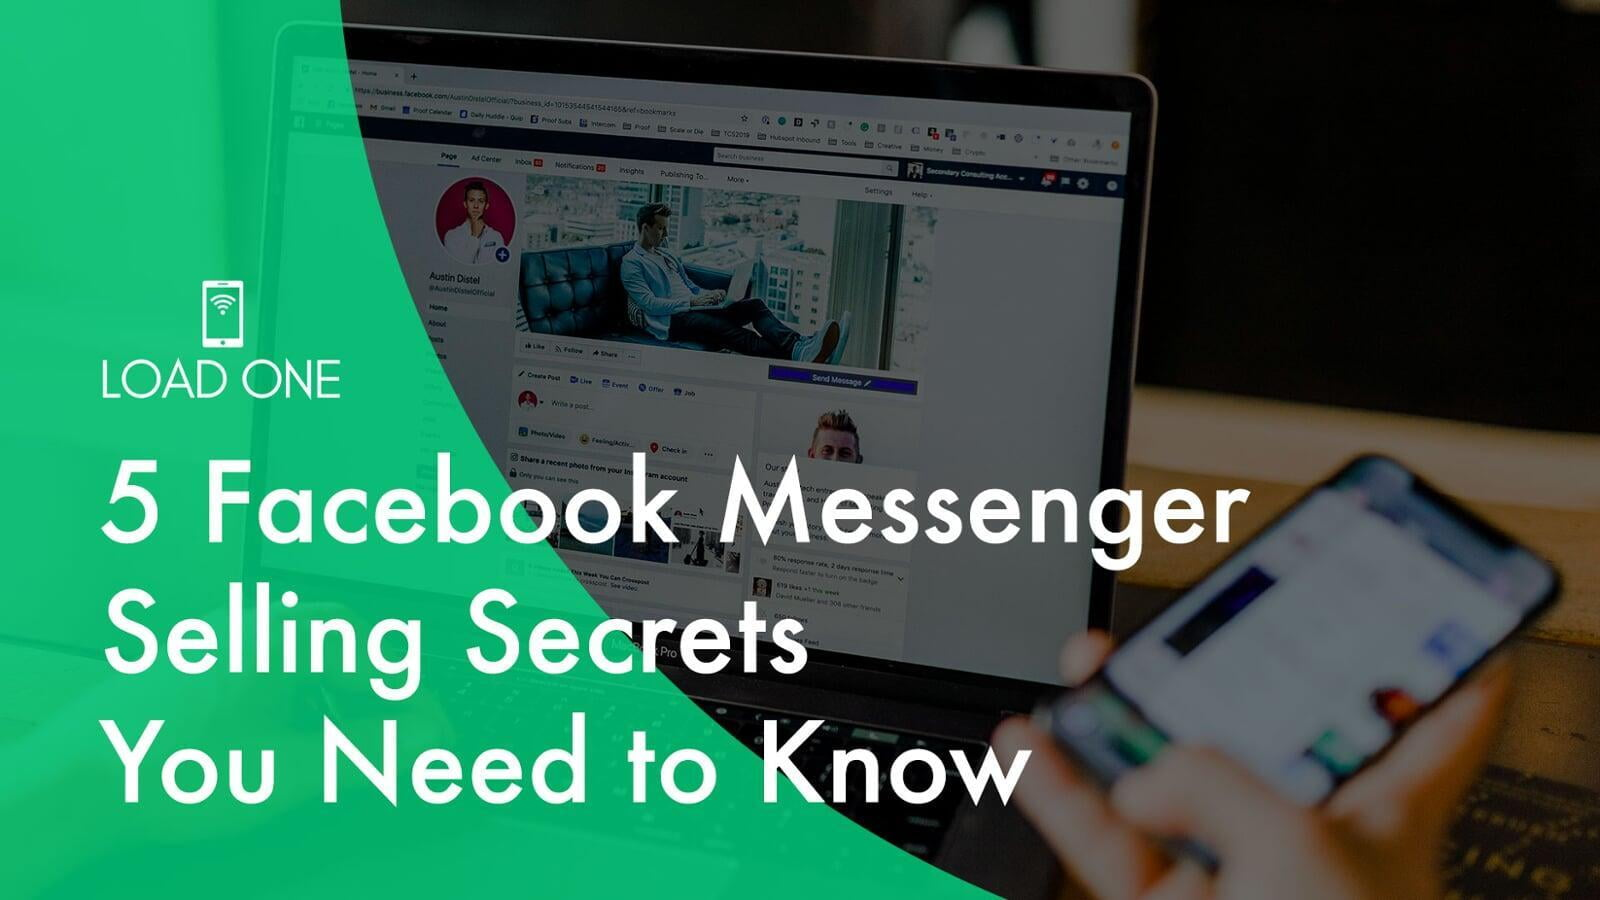 5 Facebook Messenger Selling Secrets You Need to Know